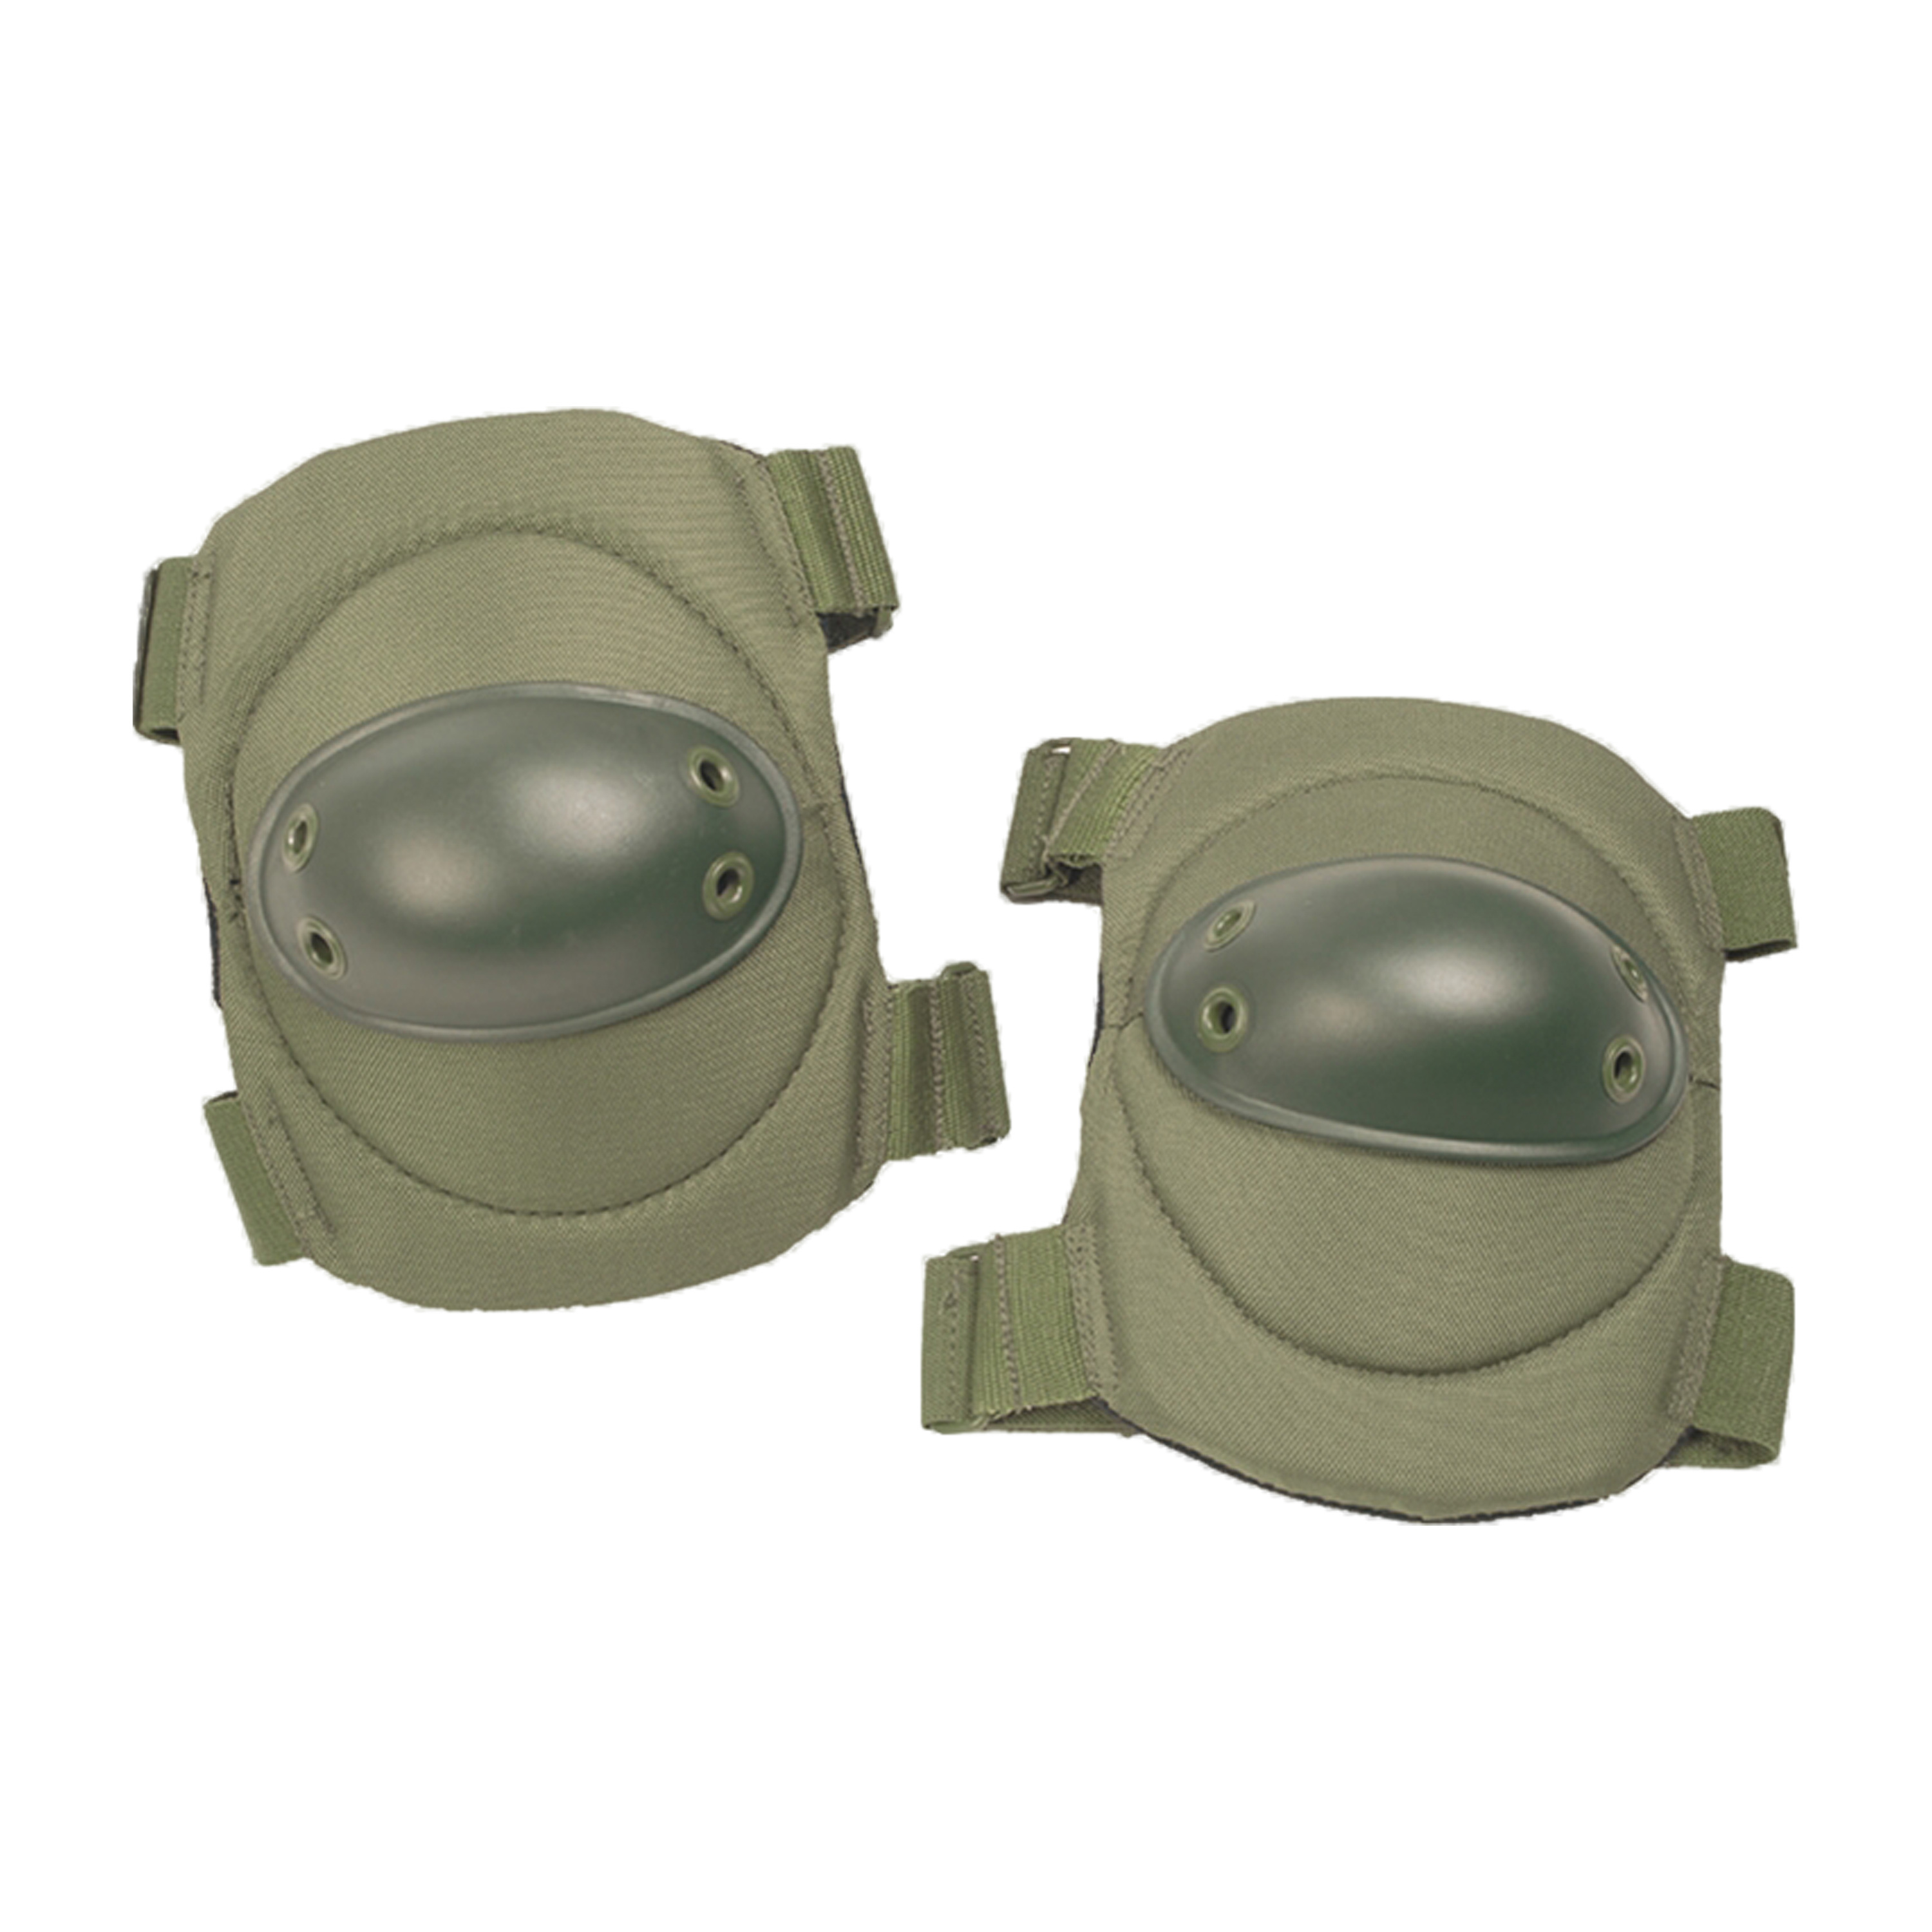 Elbow Pads Mil-Tec olive